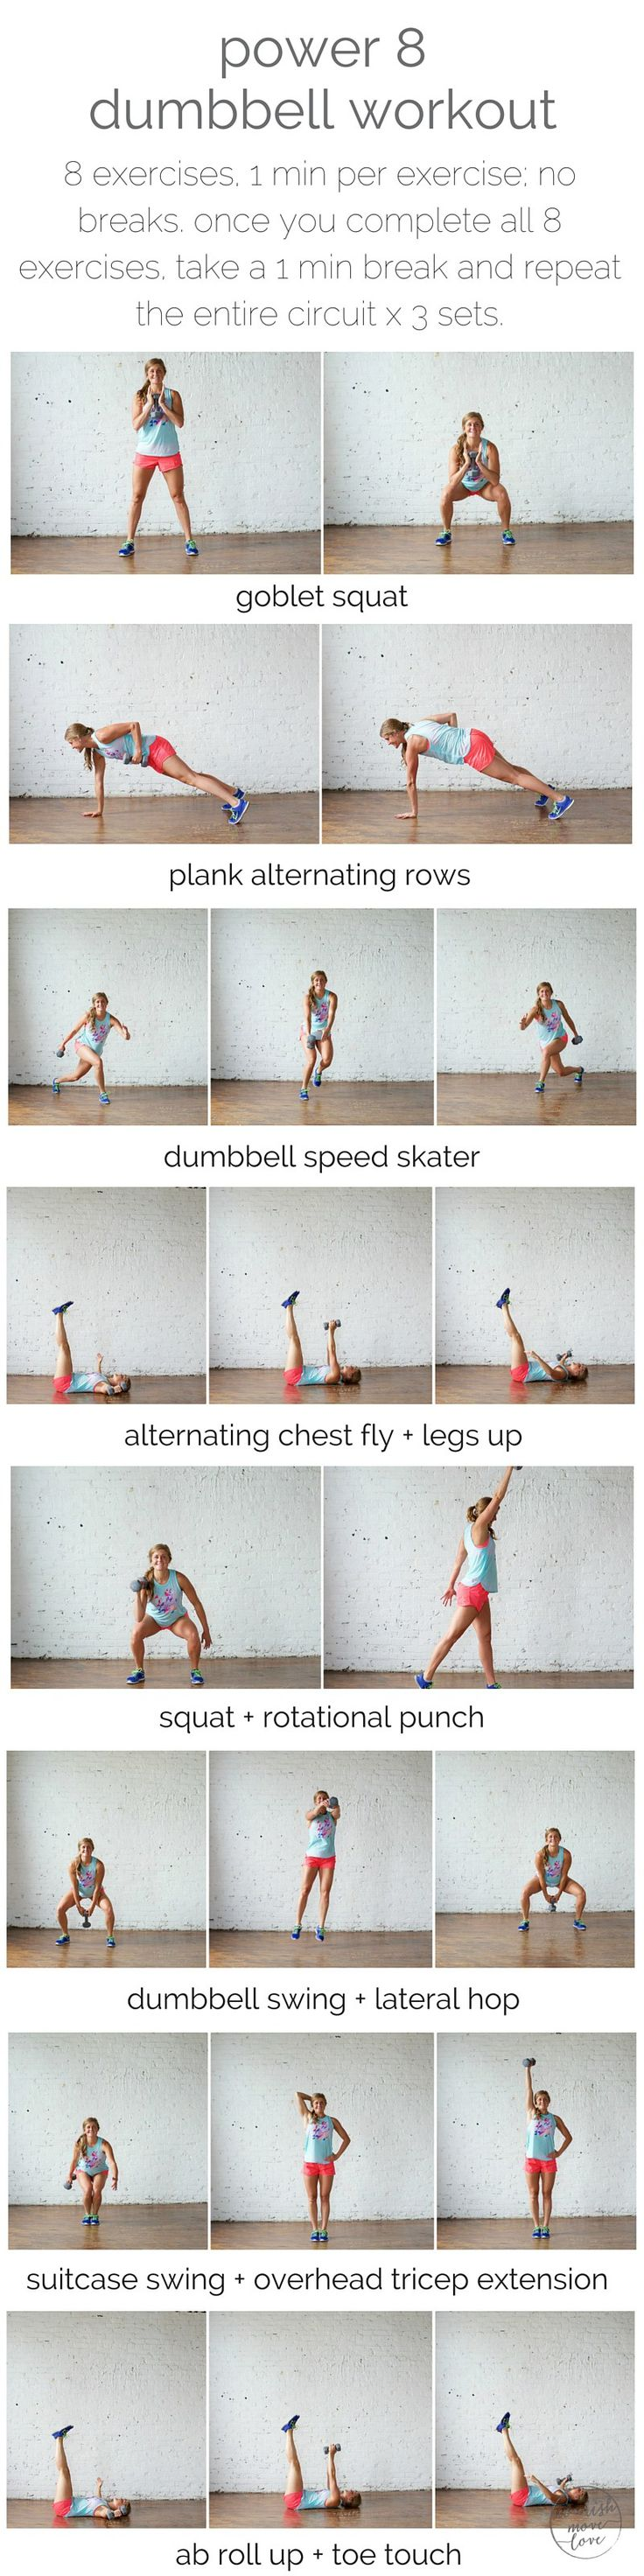 power 8 dumbbell workout | power 8 is a total body workout based of 8 extremely effective exercises that require just one dumbbell. | www.nourishmovelove.com